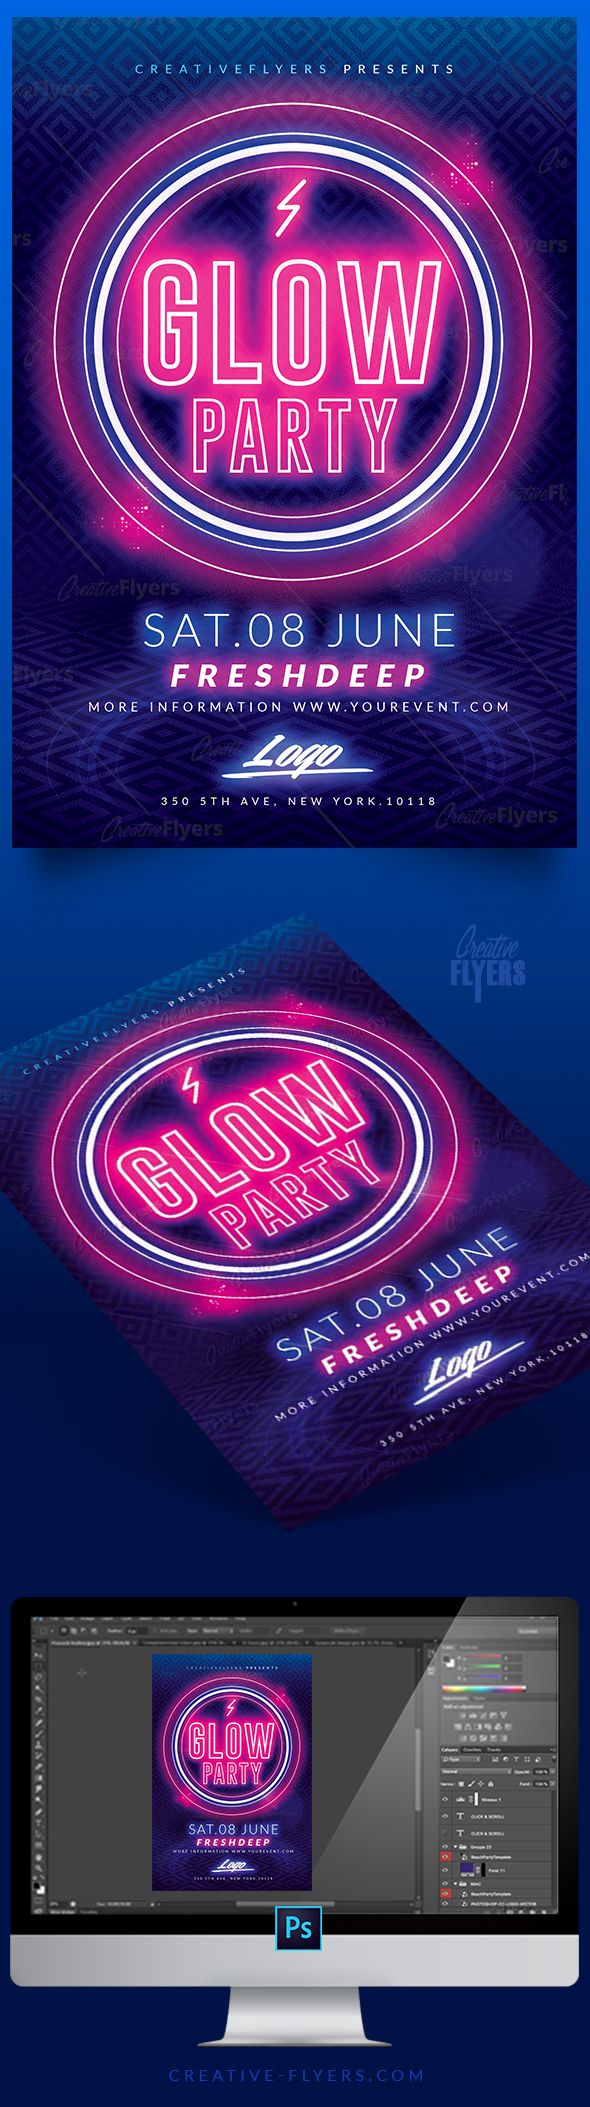 Flyer Outline Extraordinary Download Glow Party Flyer Templates Psd  Creative Flyers